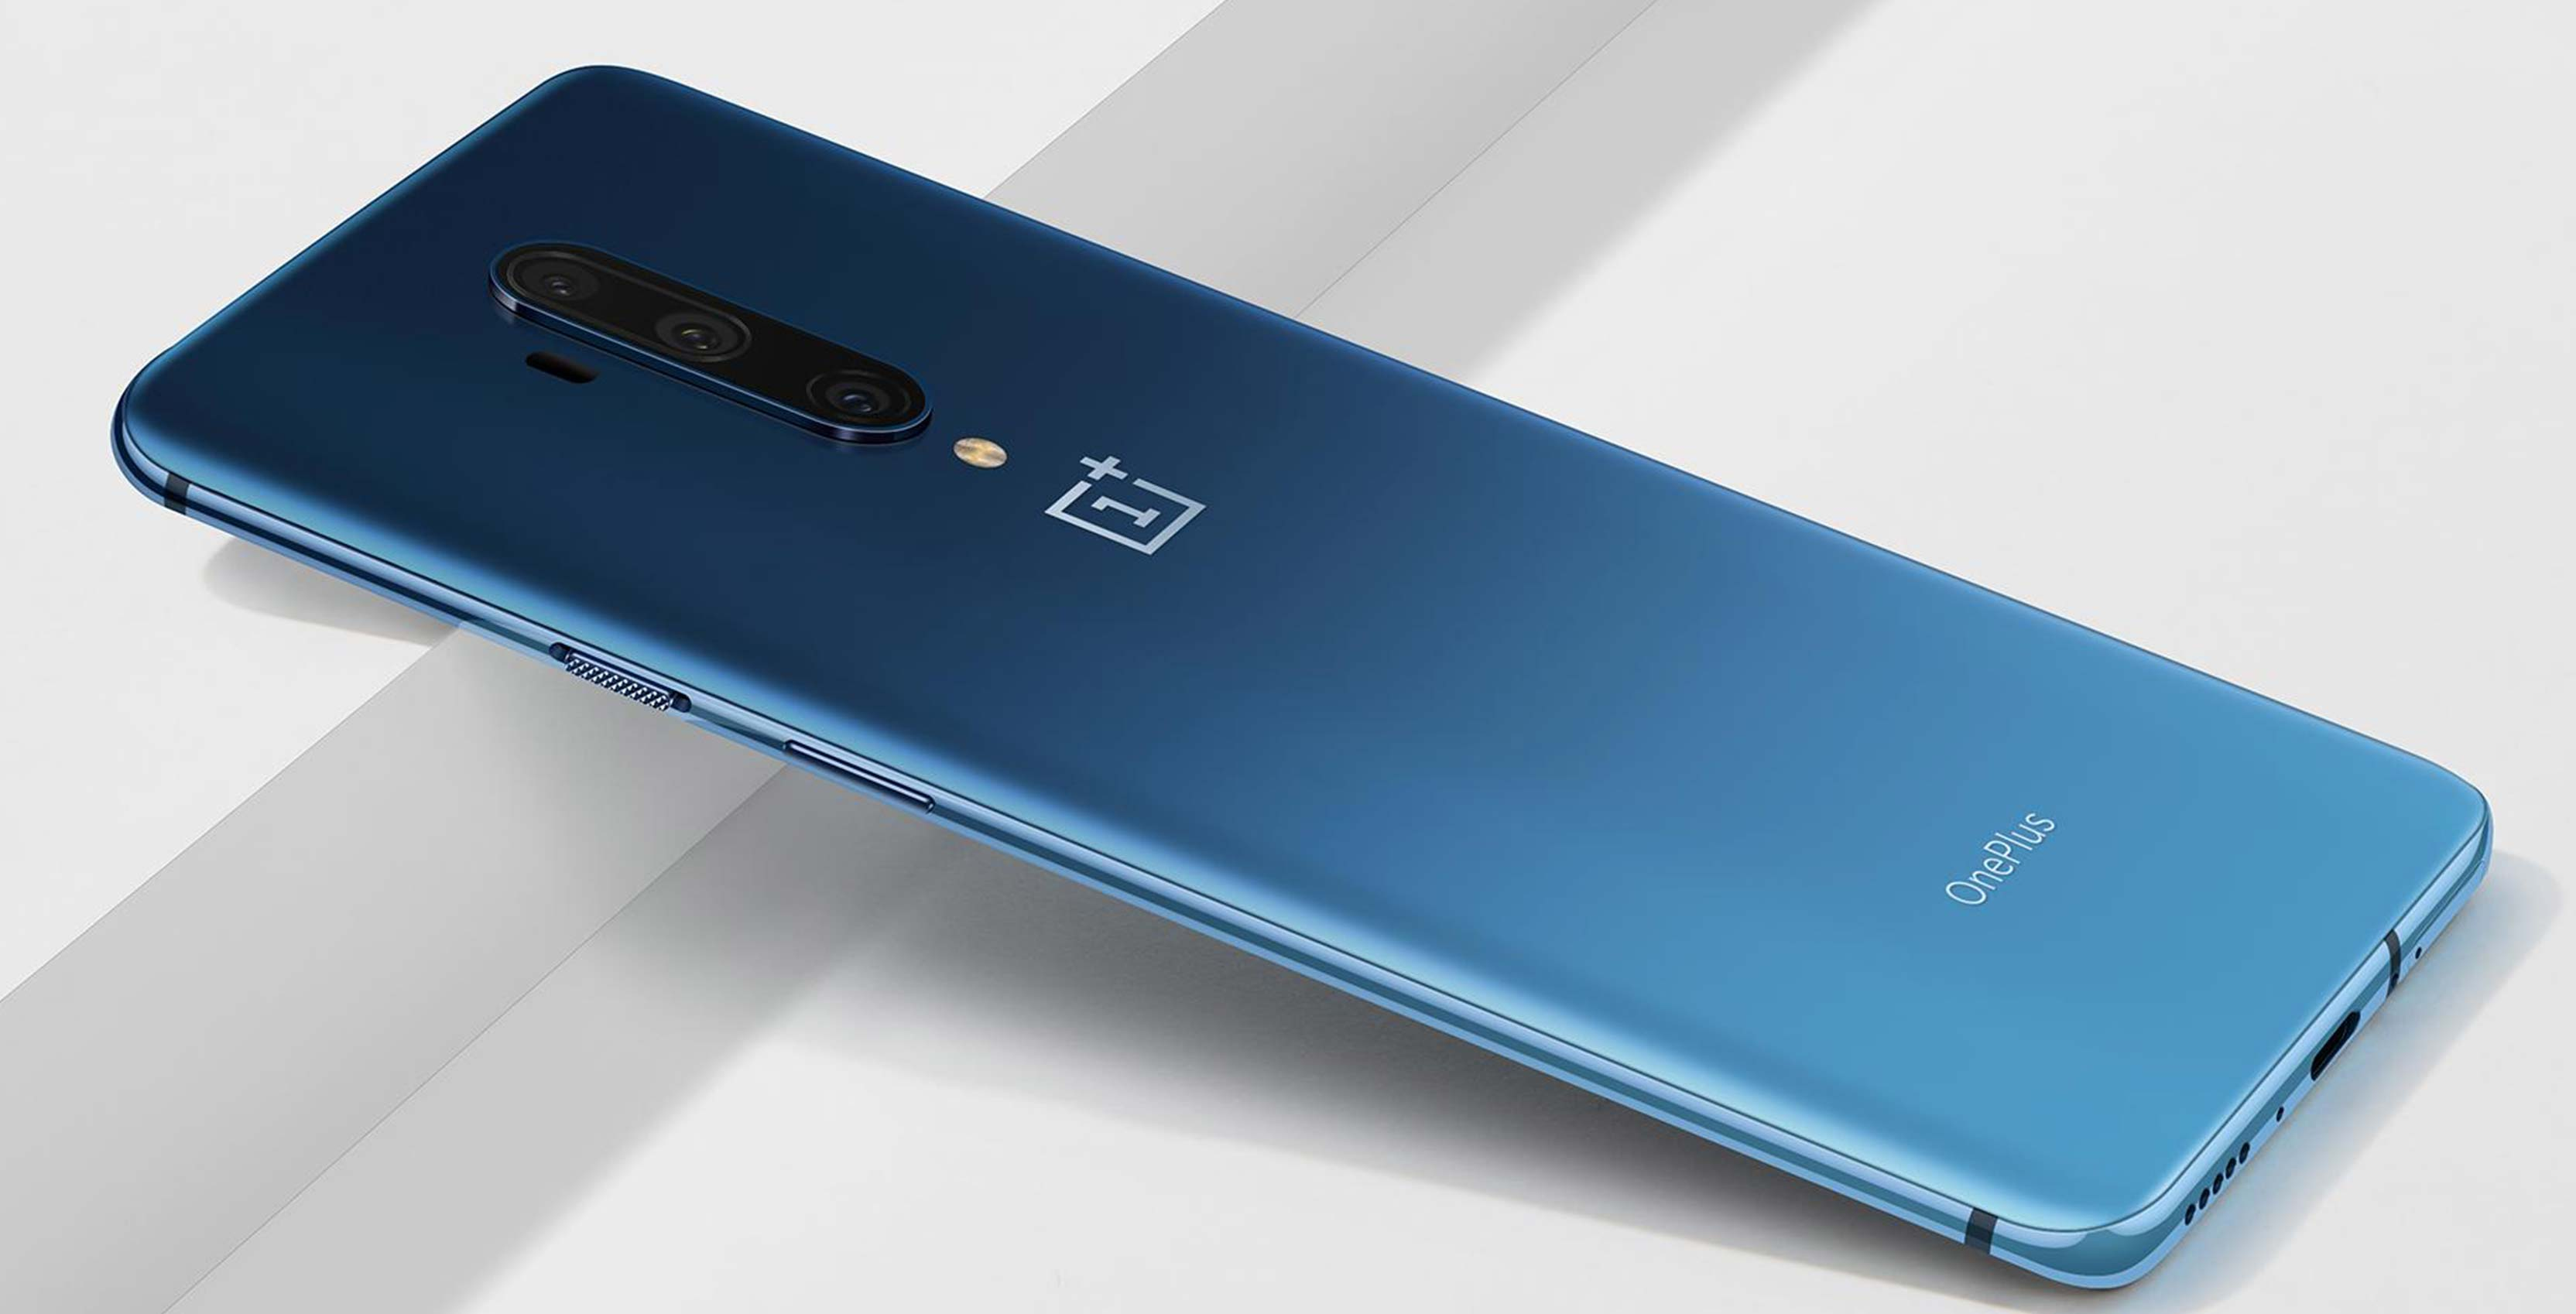 Should OnePlus launch the 7T Pro in Canada?